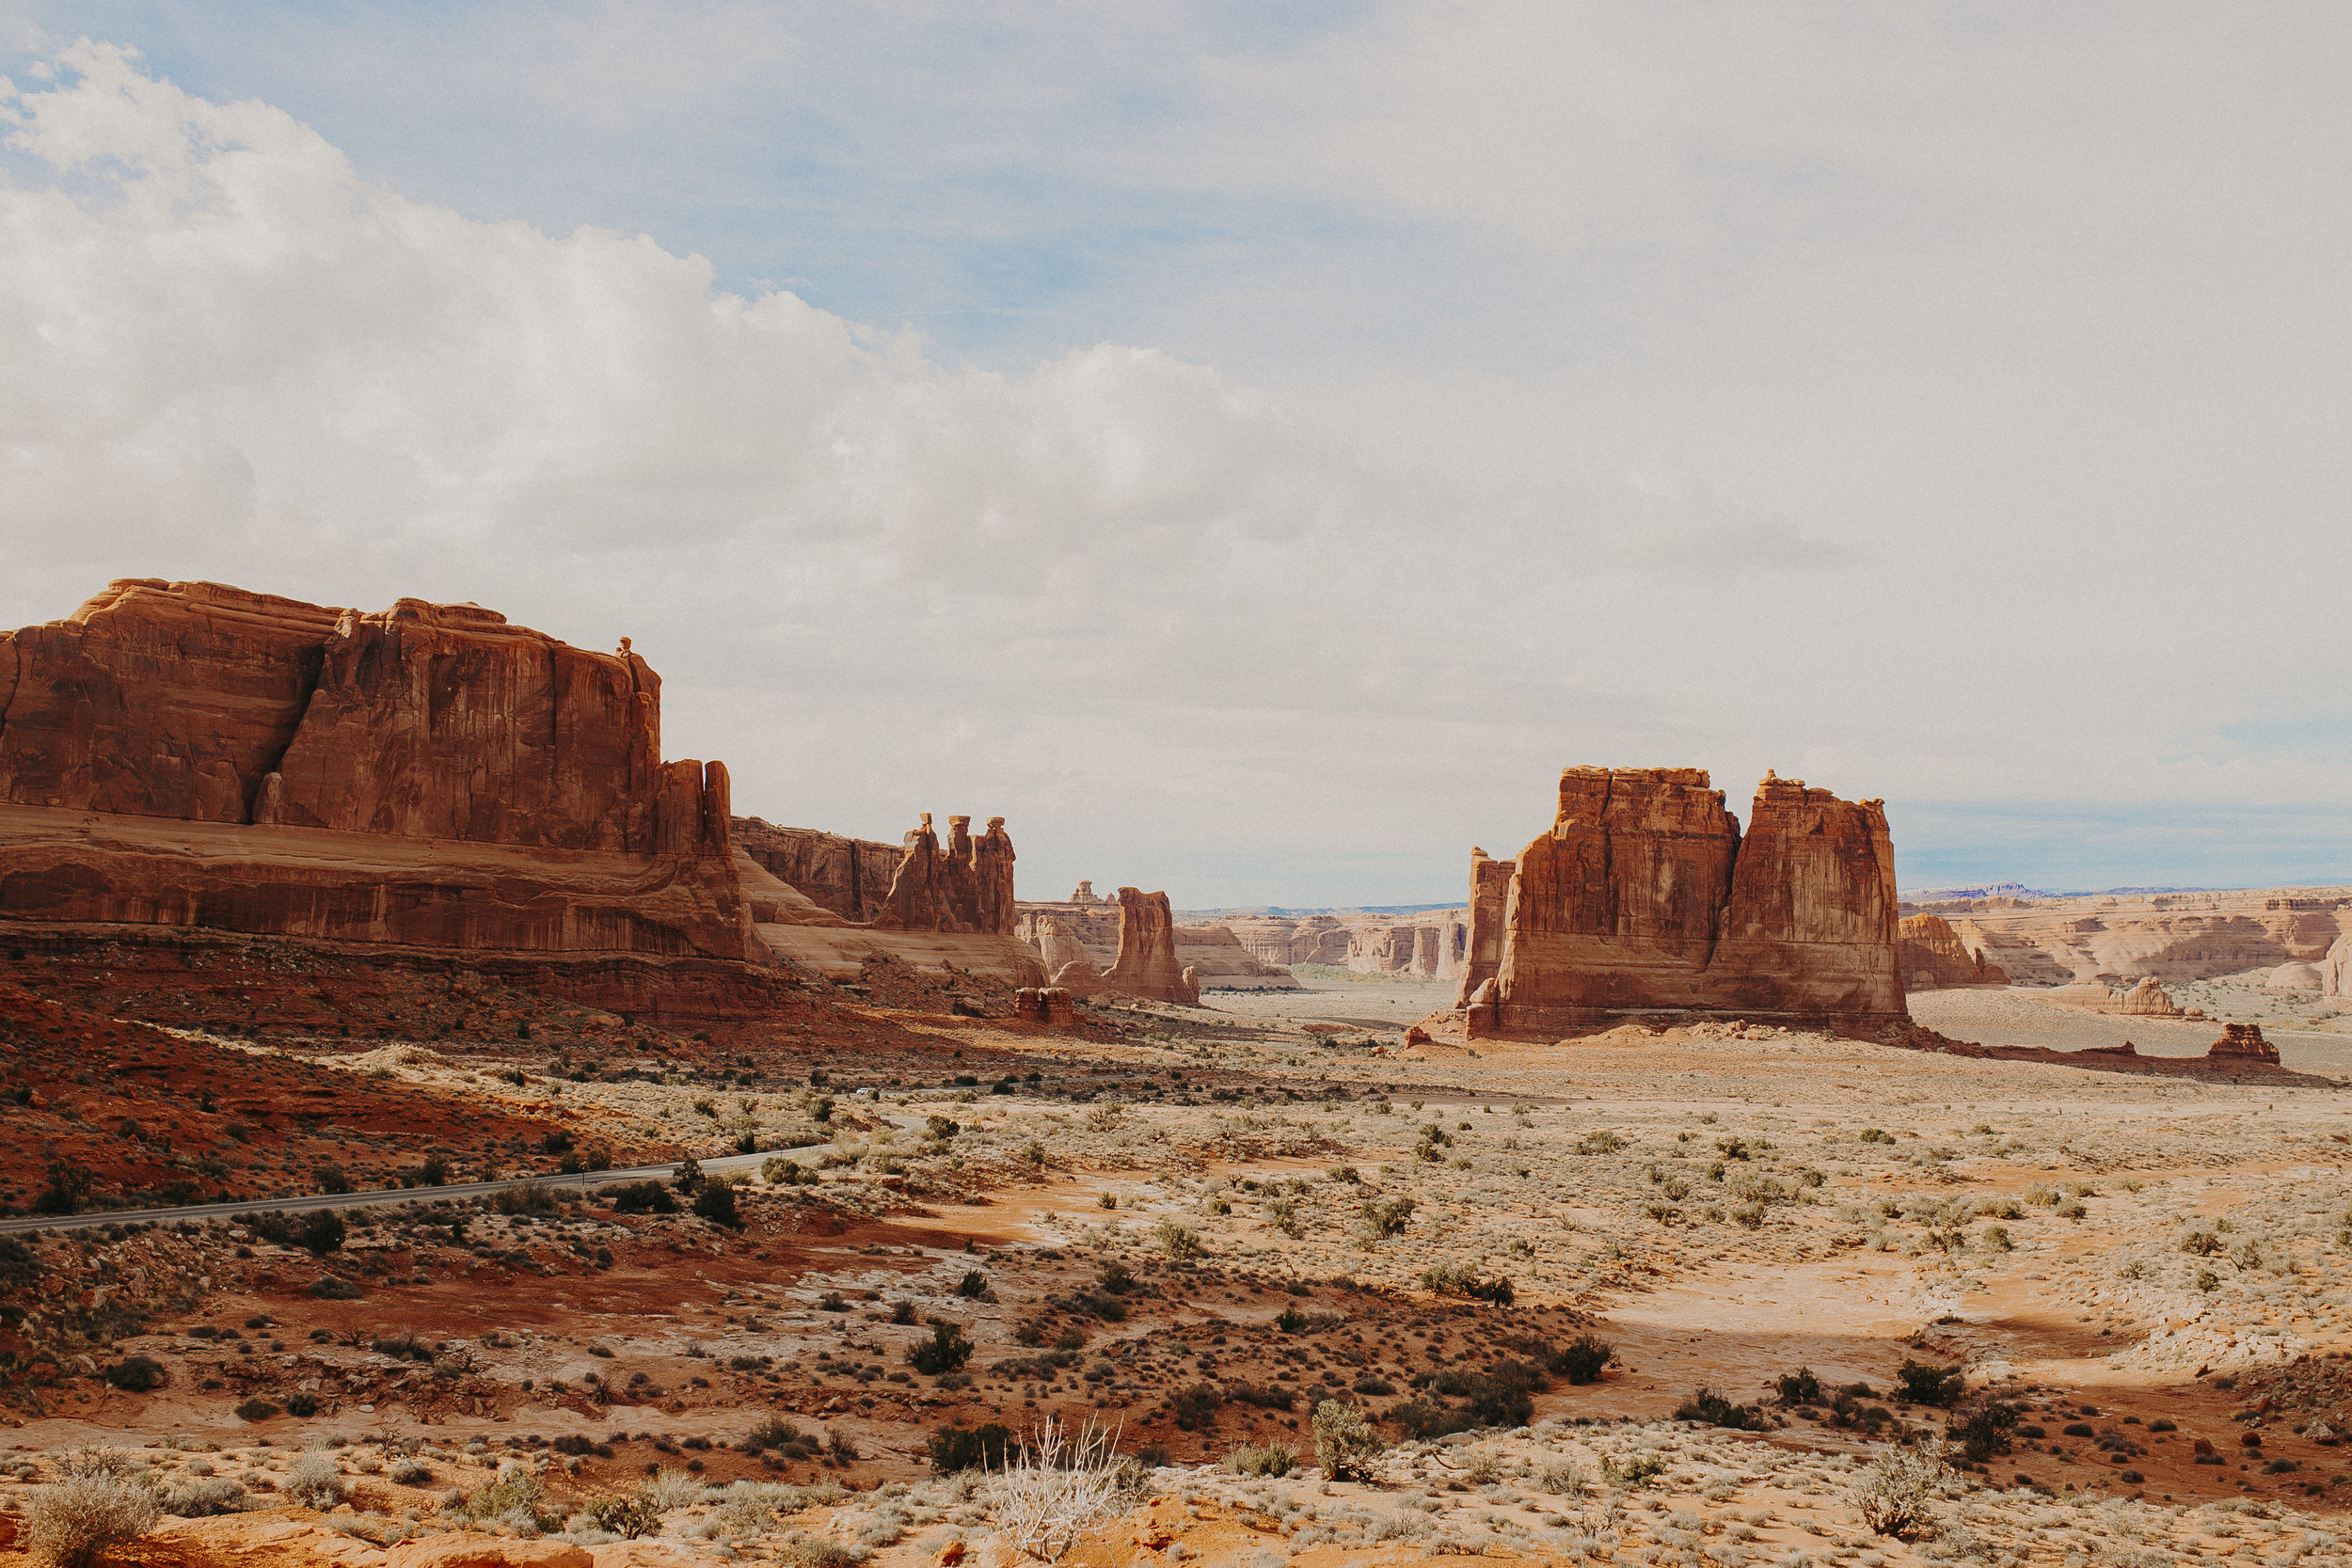 visit-arches-national-park-what-to-do-18.jpg